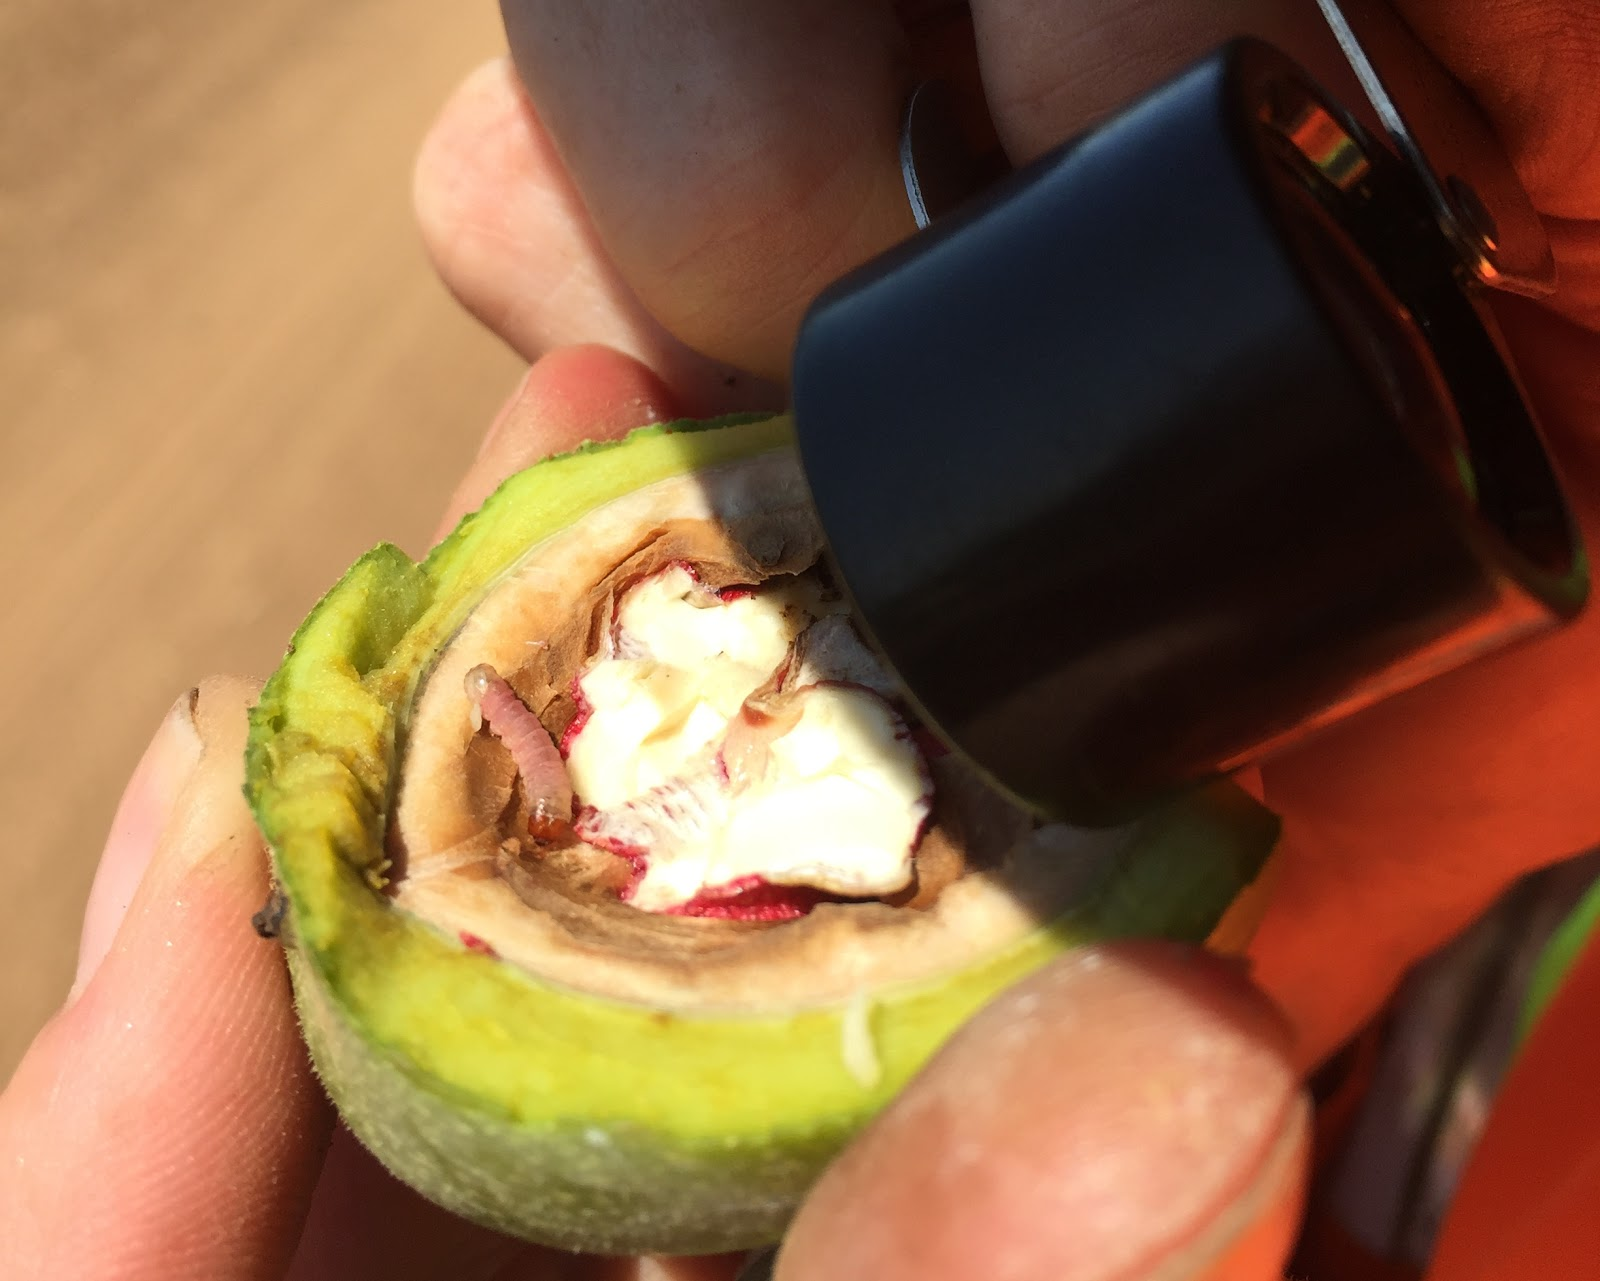 Grower uses a hand lens to observe a codling moth caterpillar burrowing out of a walnut.